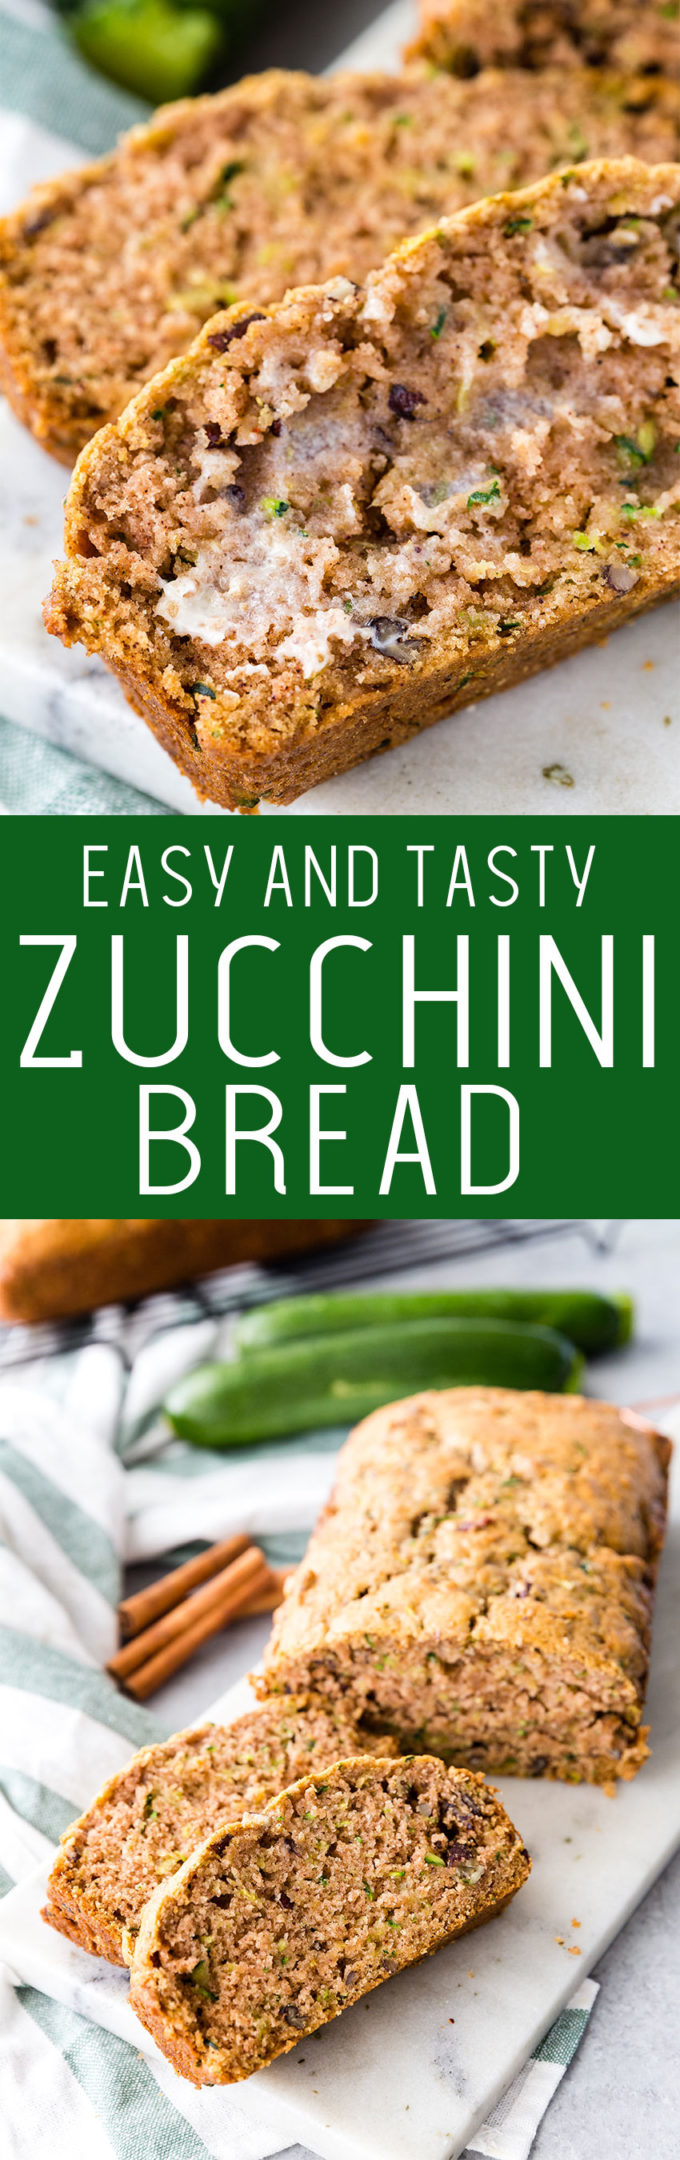 Easy zucchini bread packed with flavor, the perfect recipe